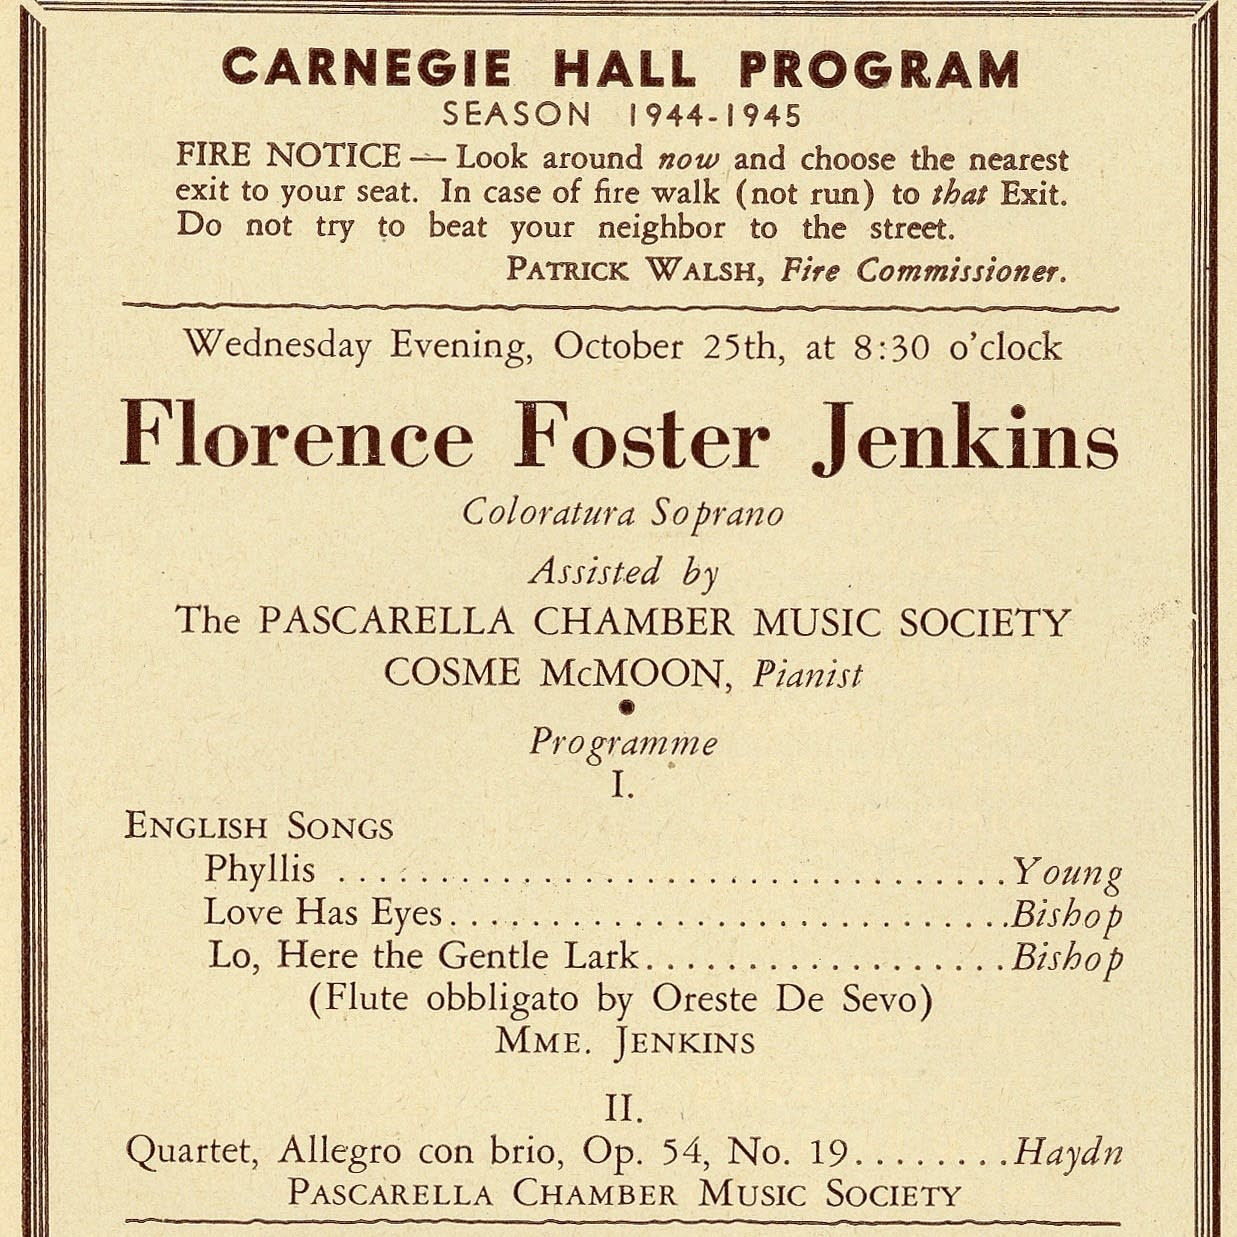 Program for Florence Foster Jenkins, 1944